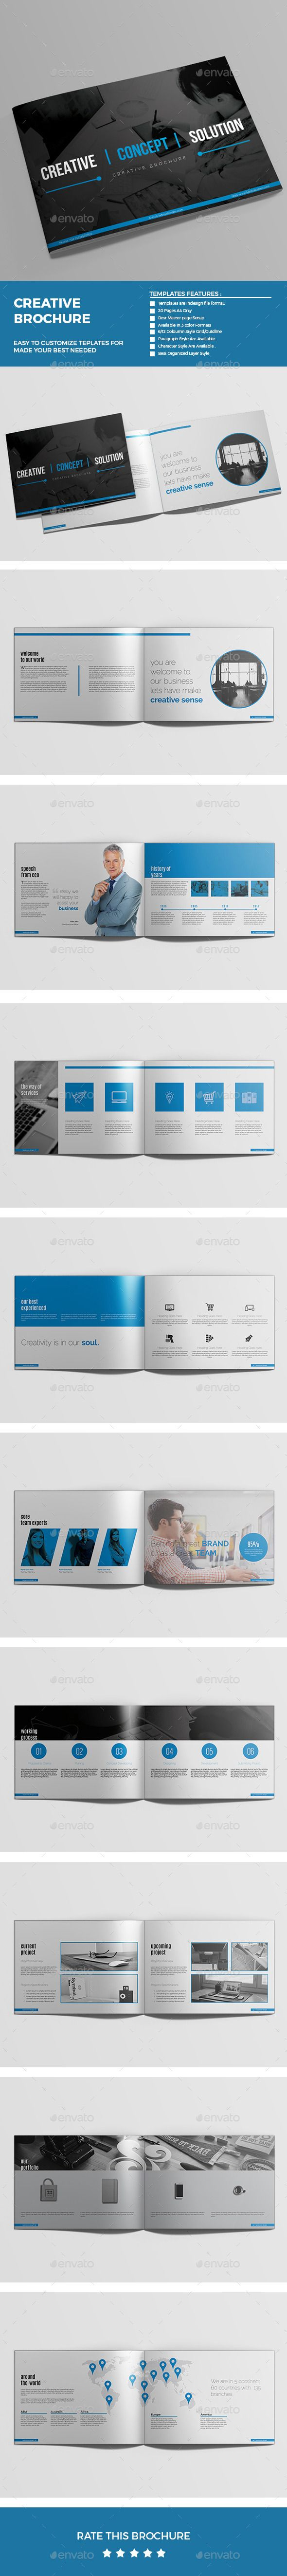 Brochure Template #brochure #design Download: http://graphicriver.net/item/brochure/12584002?ref=ksioks